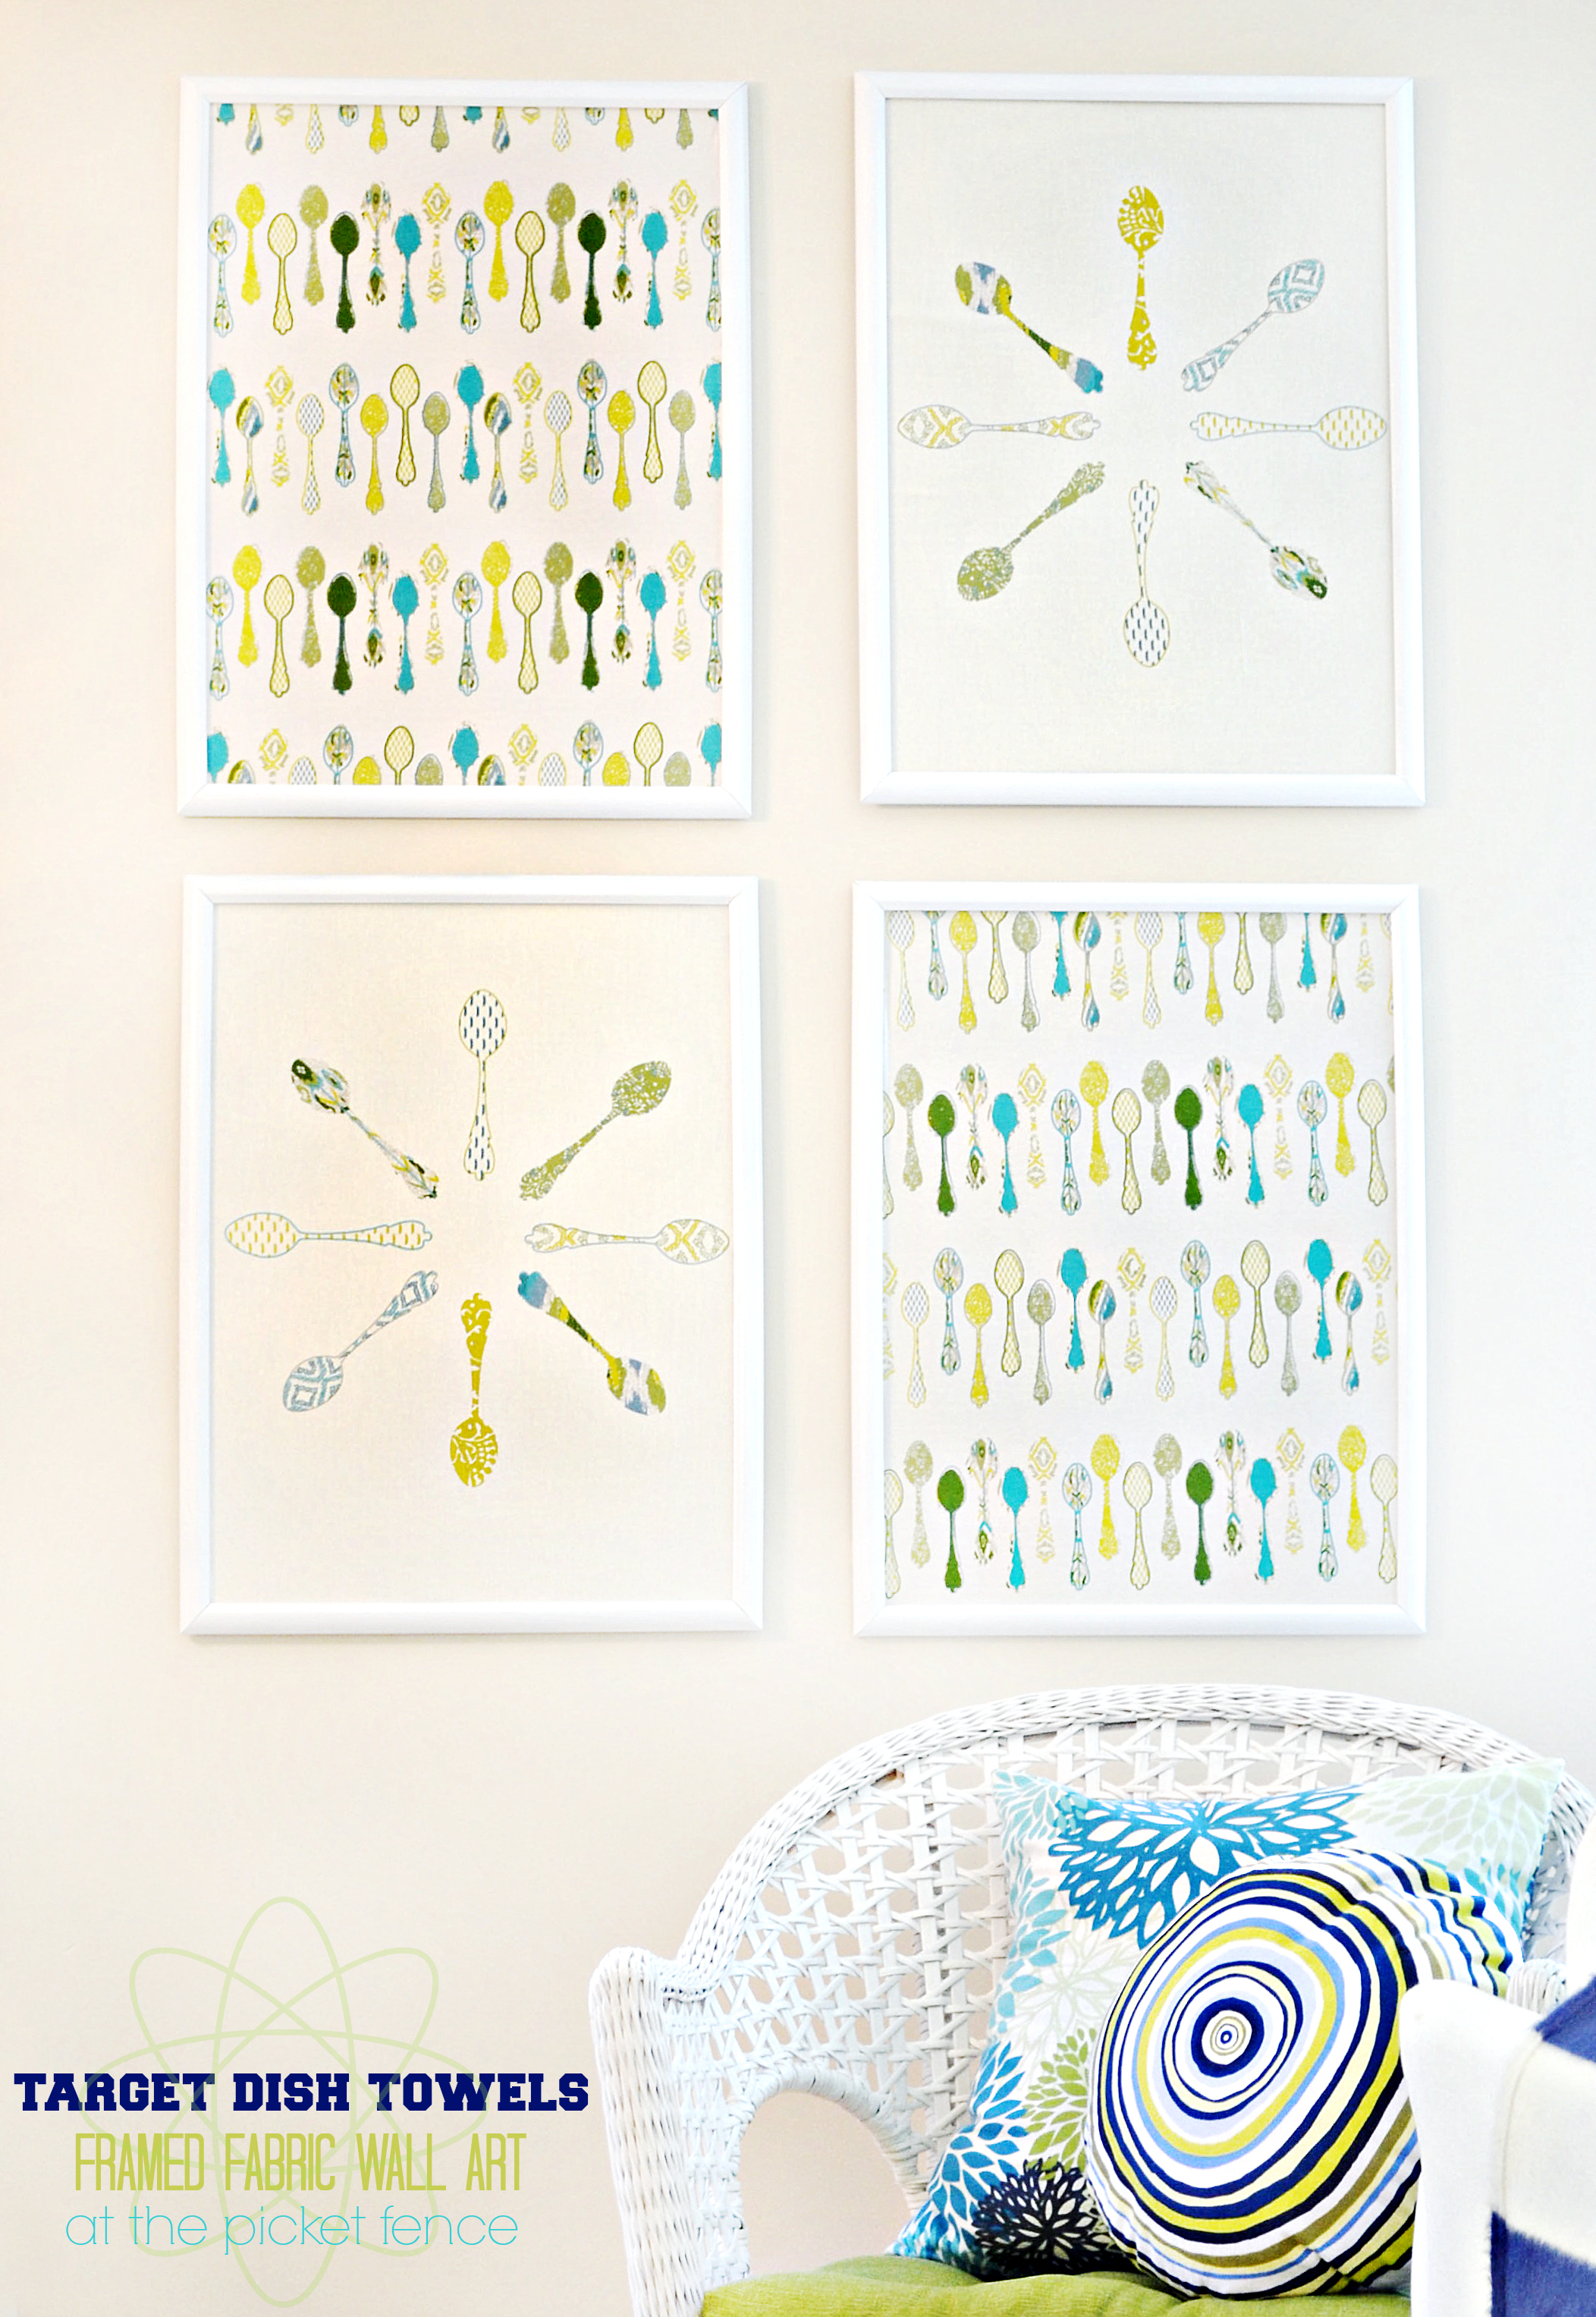 For Kitchen Art How To Make Framed Fabric Wall Art With Target Kitchen Towels